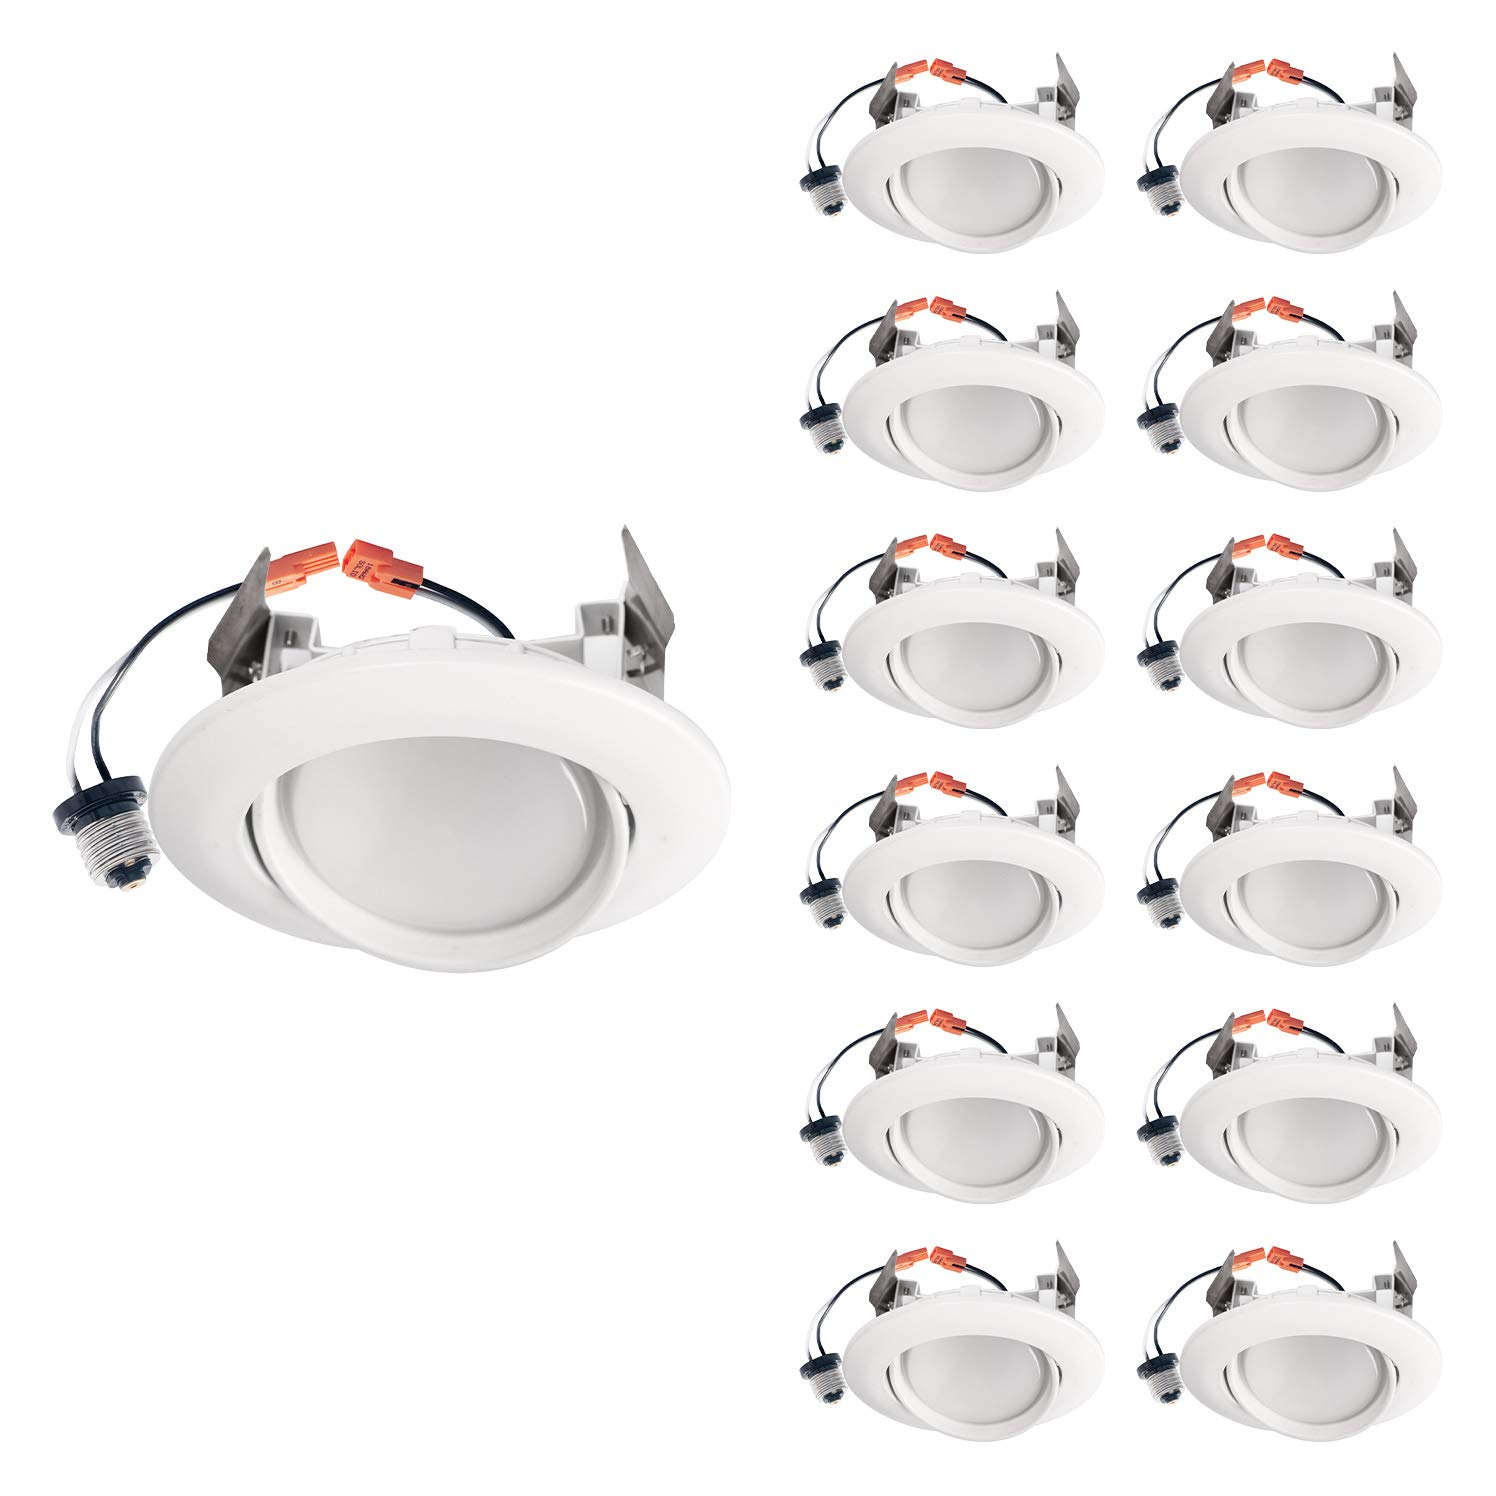 OSTWIN (12 Pack) 4 inch Dimmable LED Downlight Recessed Ceiling Light Fixture, Adjustable Gimbal Trim Kit Can Light, 10 W (75 Watt Replacement), 900 Lm, 5000K Daylight, ETL & Energy Star